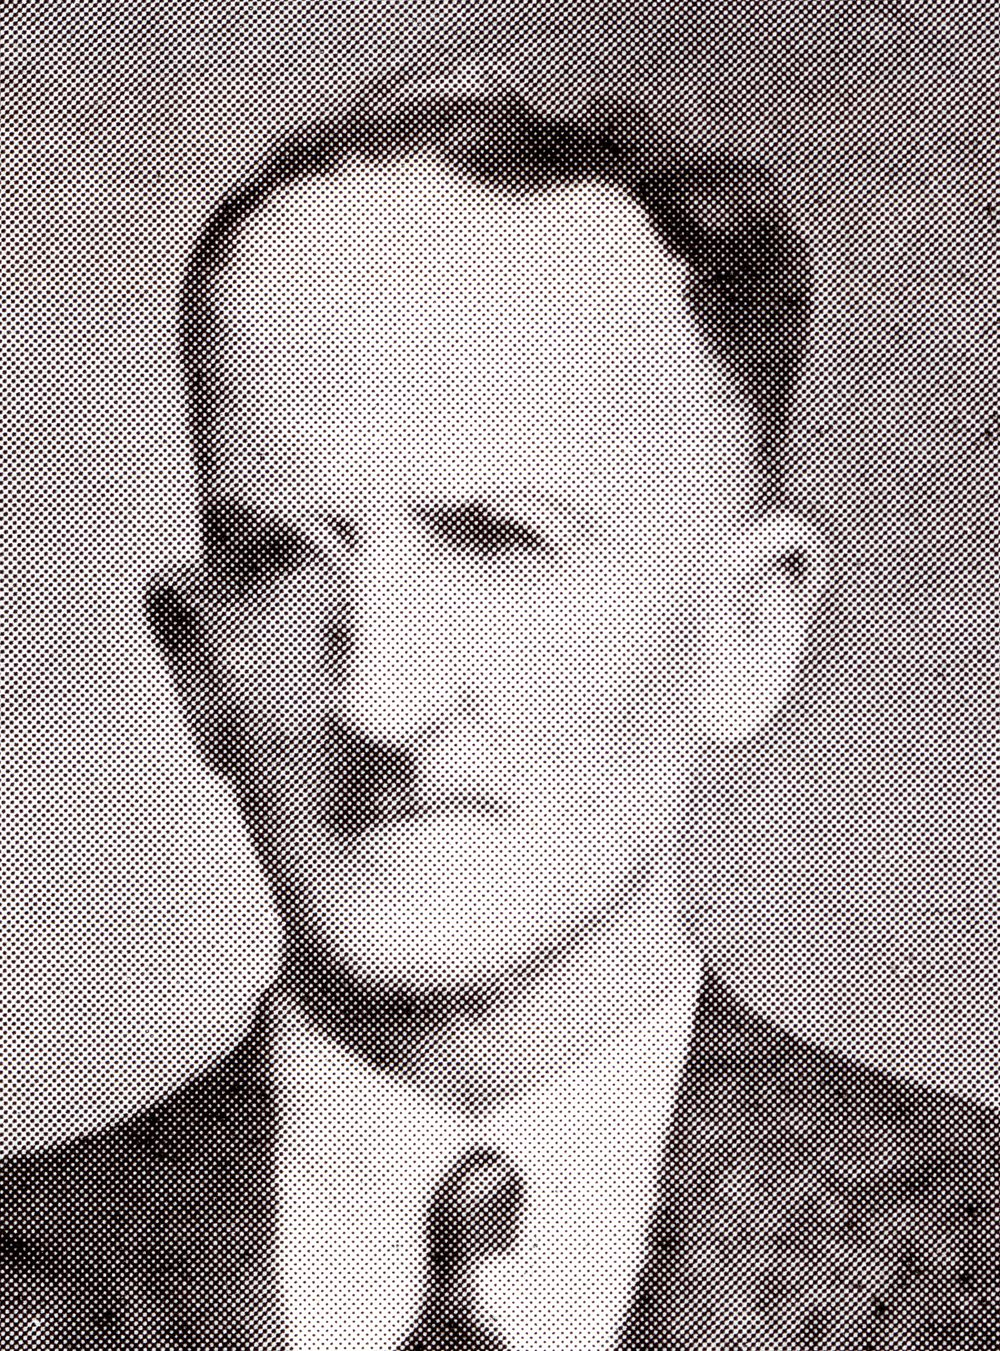 Arthur Power